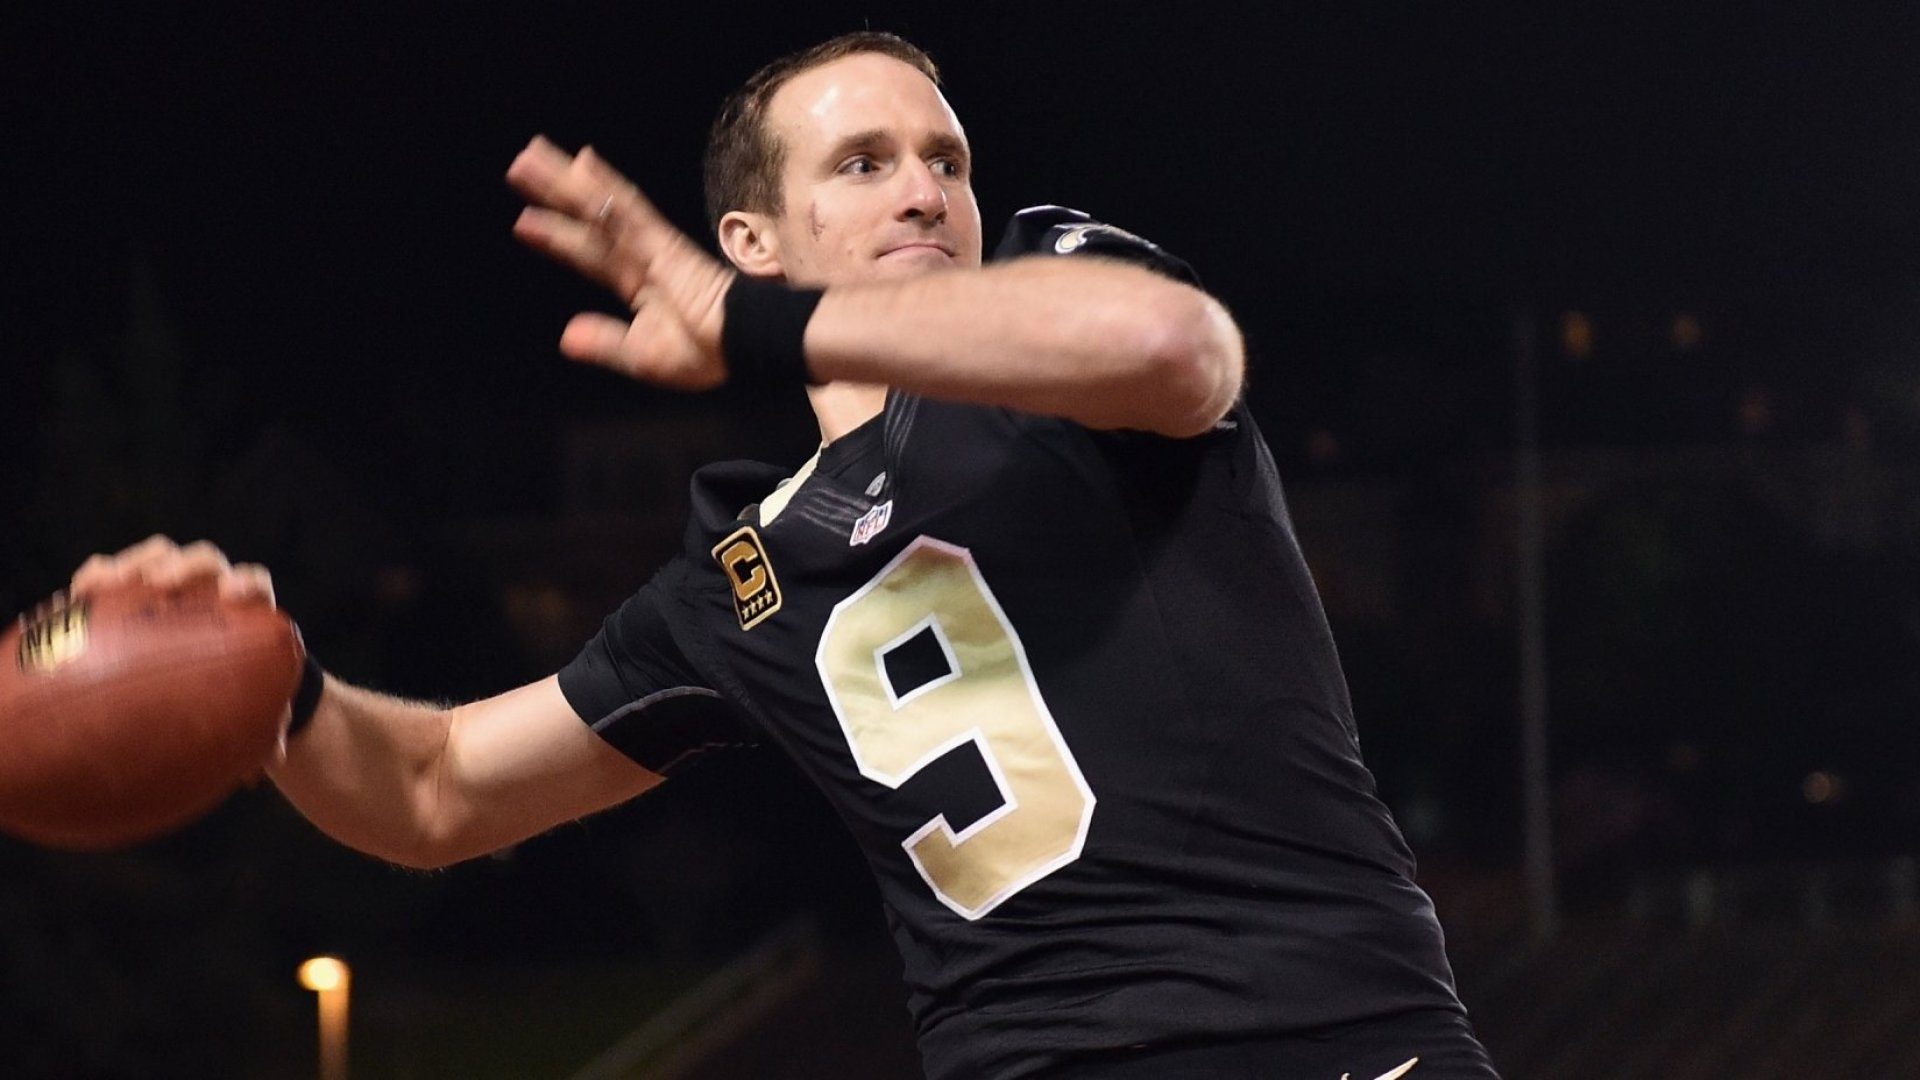 Drew Brees Just Broke the NFL Passing Record--and Spoke This Hugely Inspiring Sentence to His Kids